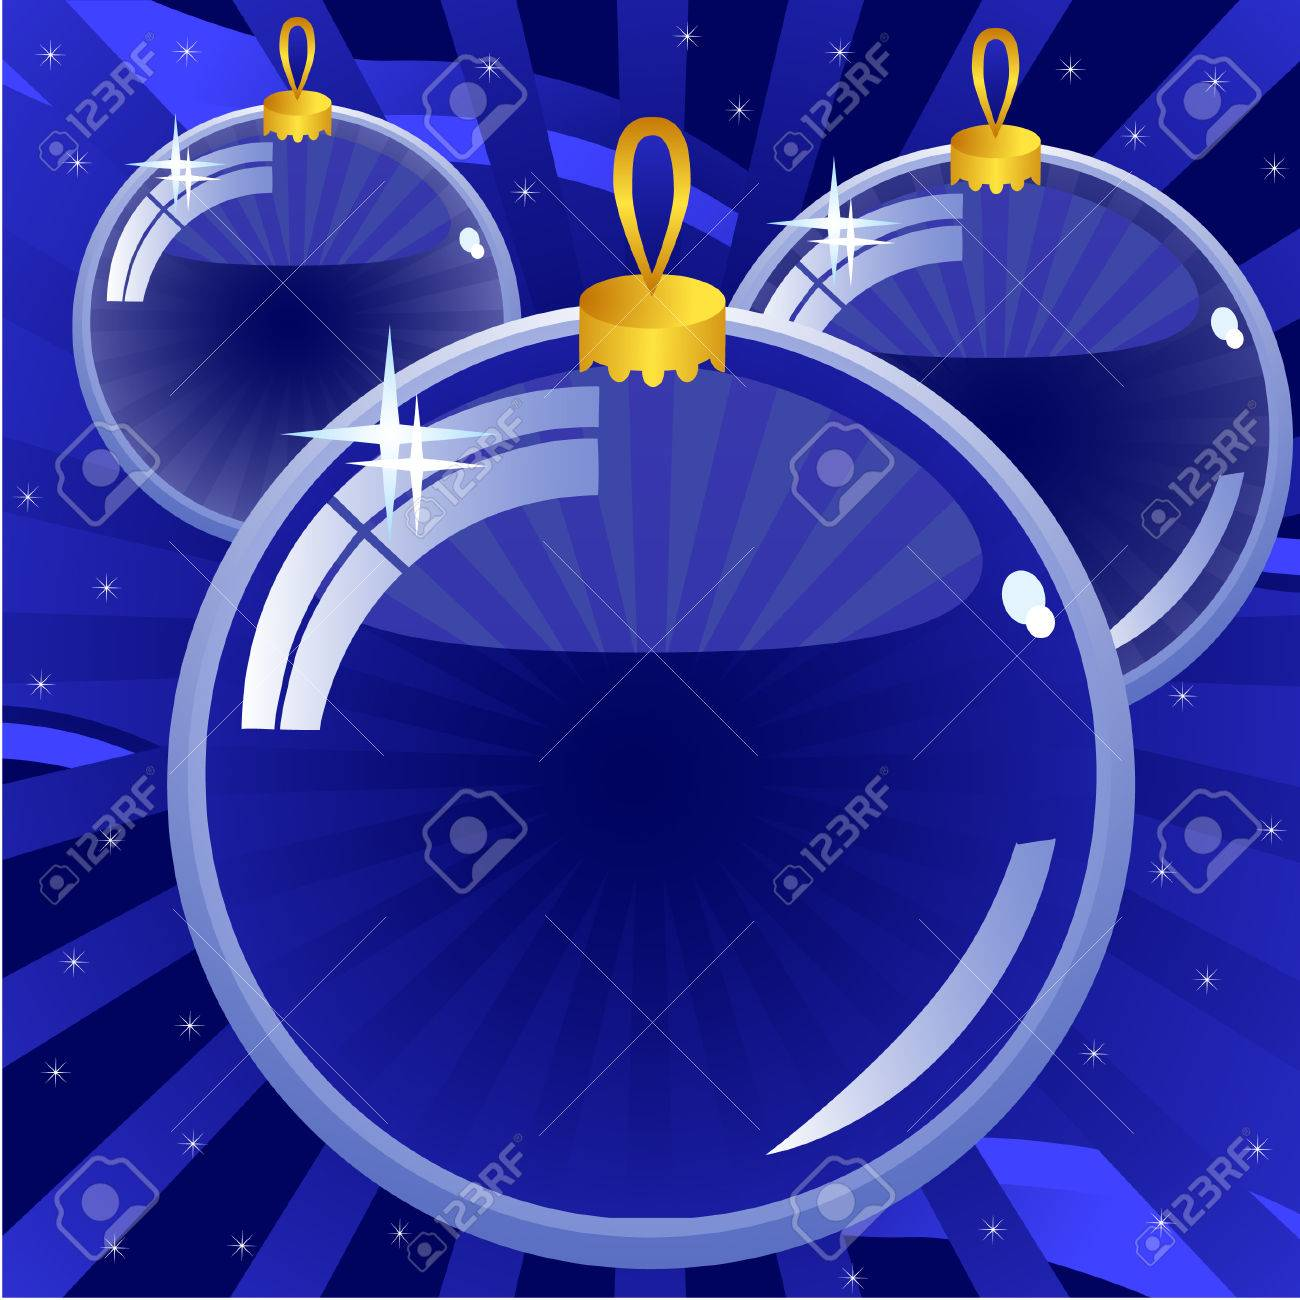 New Year's background dark blue. Three glass balls. Stock Vector - 8517696